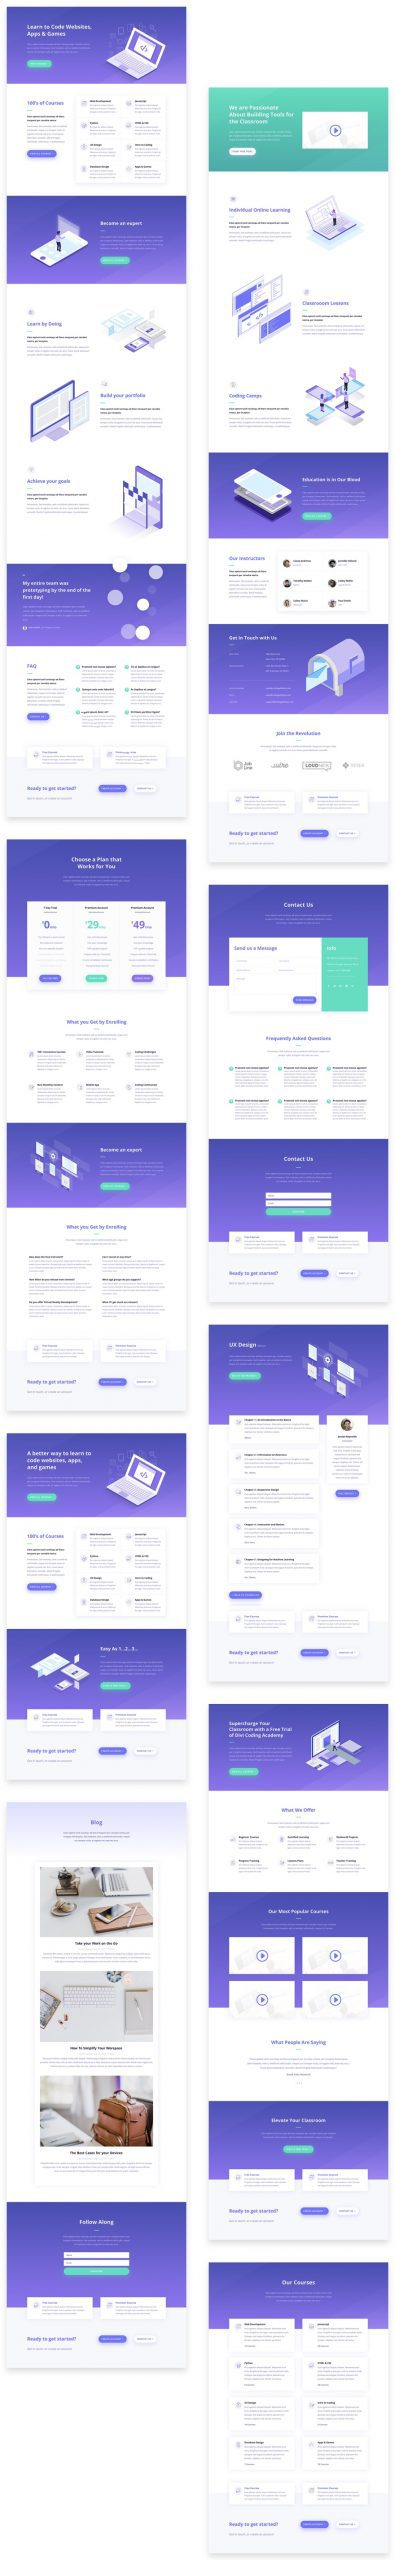 Learning Management (LMS) Layout Pack